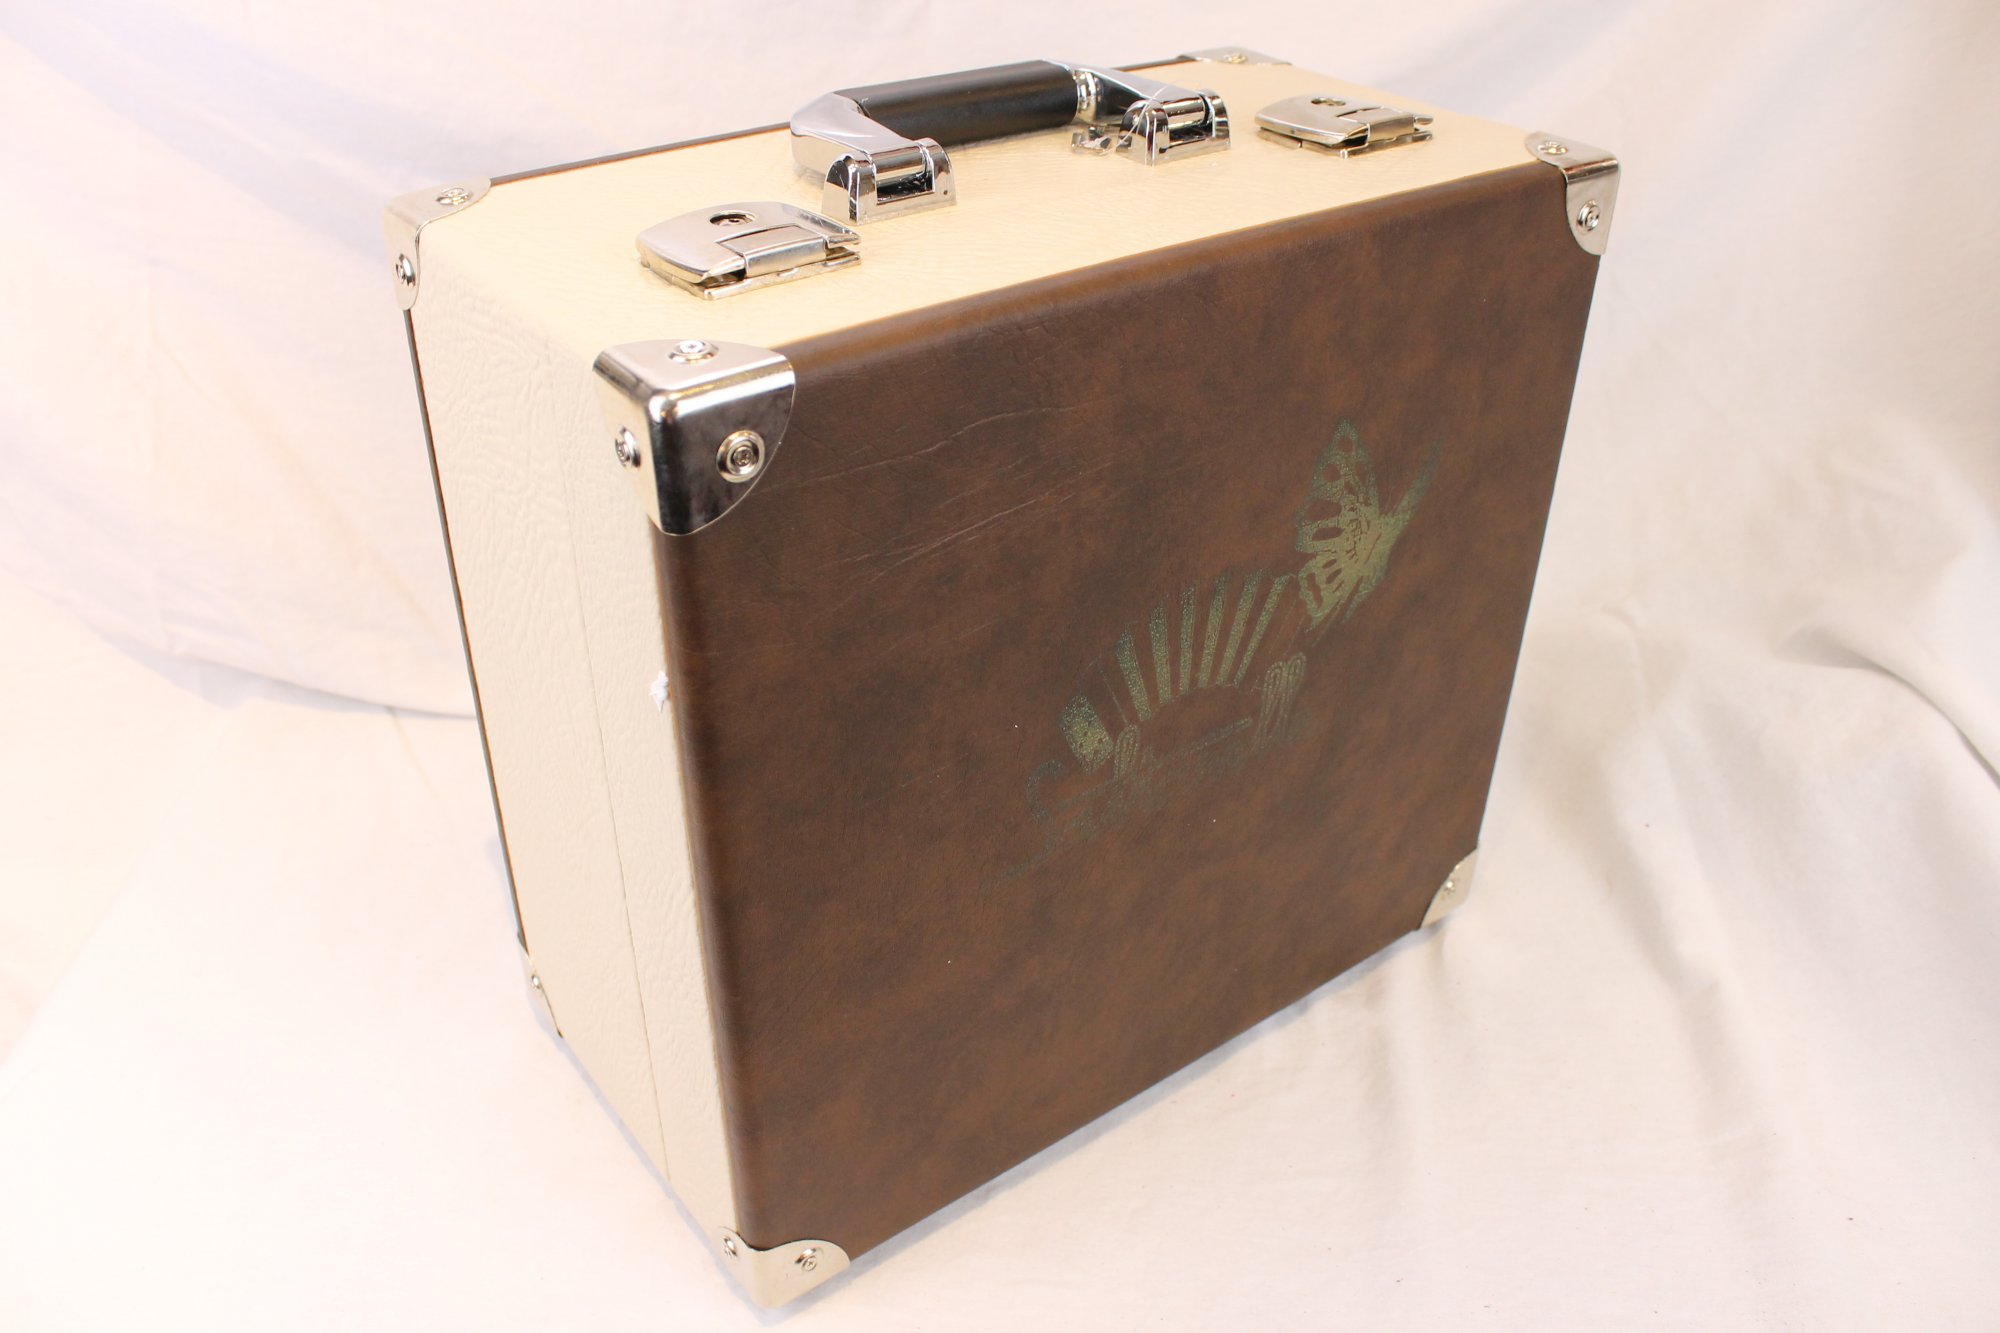 NEW Deluxe Saltarelle Hard Case for Accordion 14 x 12.75 x 7.5